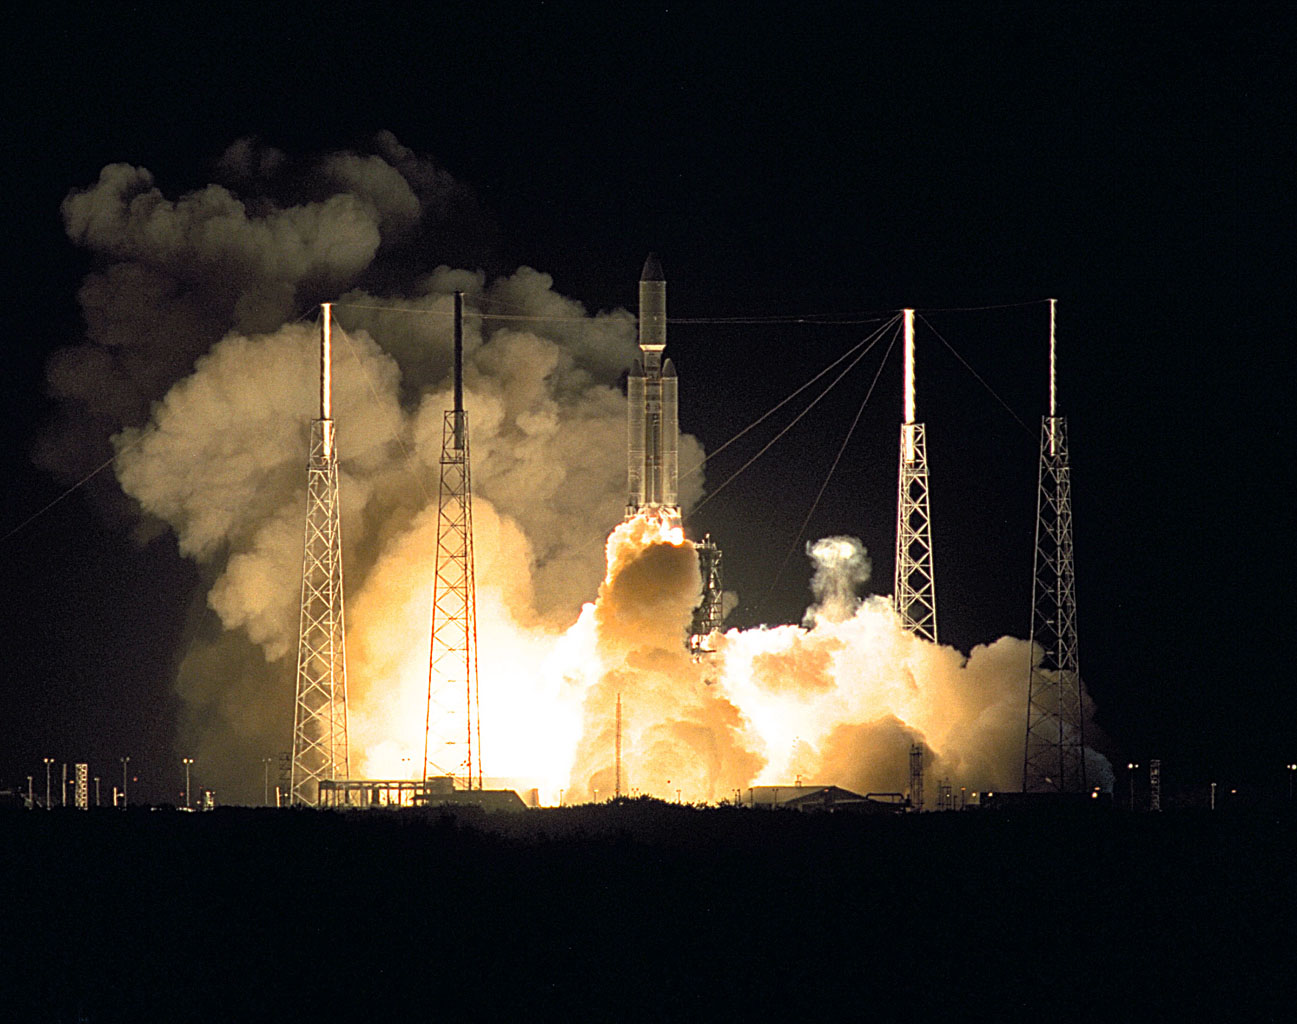 A seven-year journey to the ringed planet Saturn began on Oct. 15, 1997 with the liftoff of a Titan IVB/Centaur carrying NASA's Cassini orbiter and its attached Huygens probe